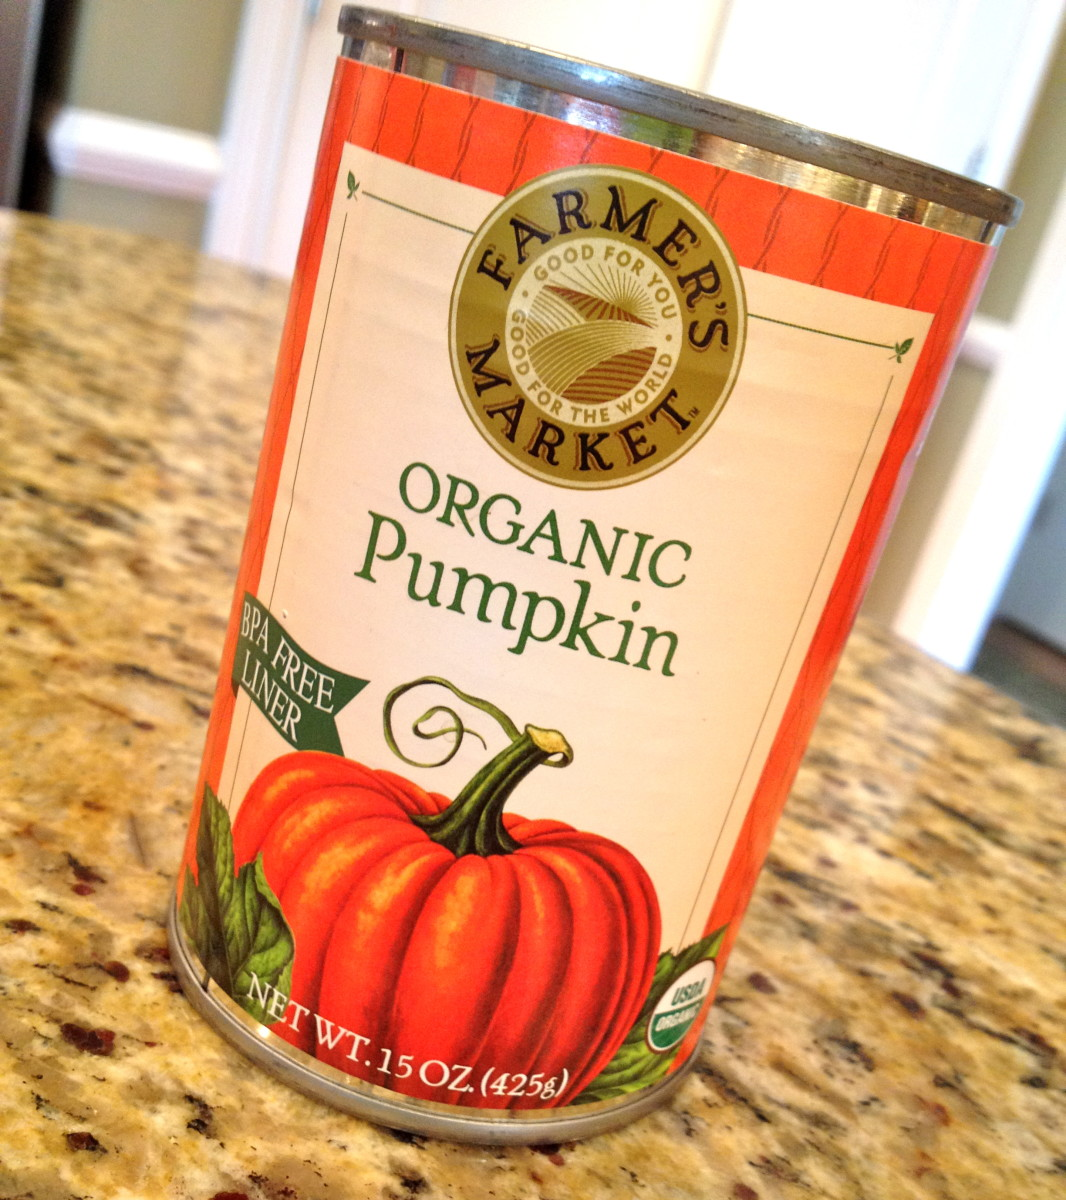 Organic pumpkin is affordable and doesn't include any nasty pesticide residues.